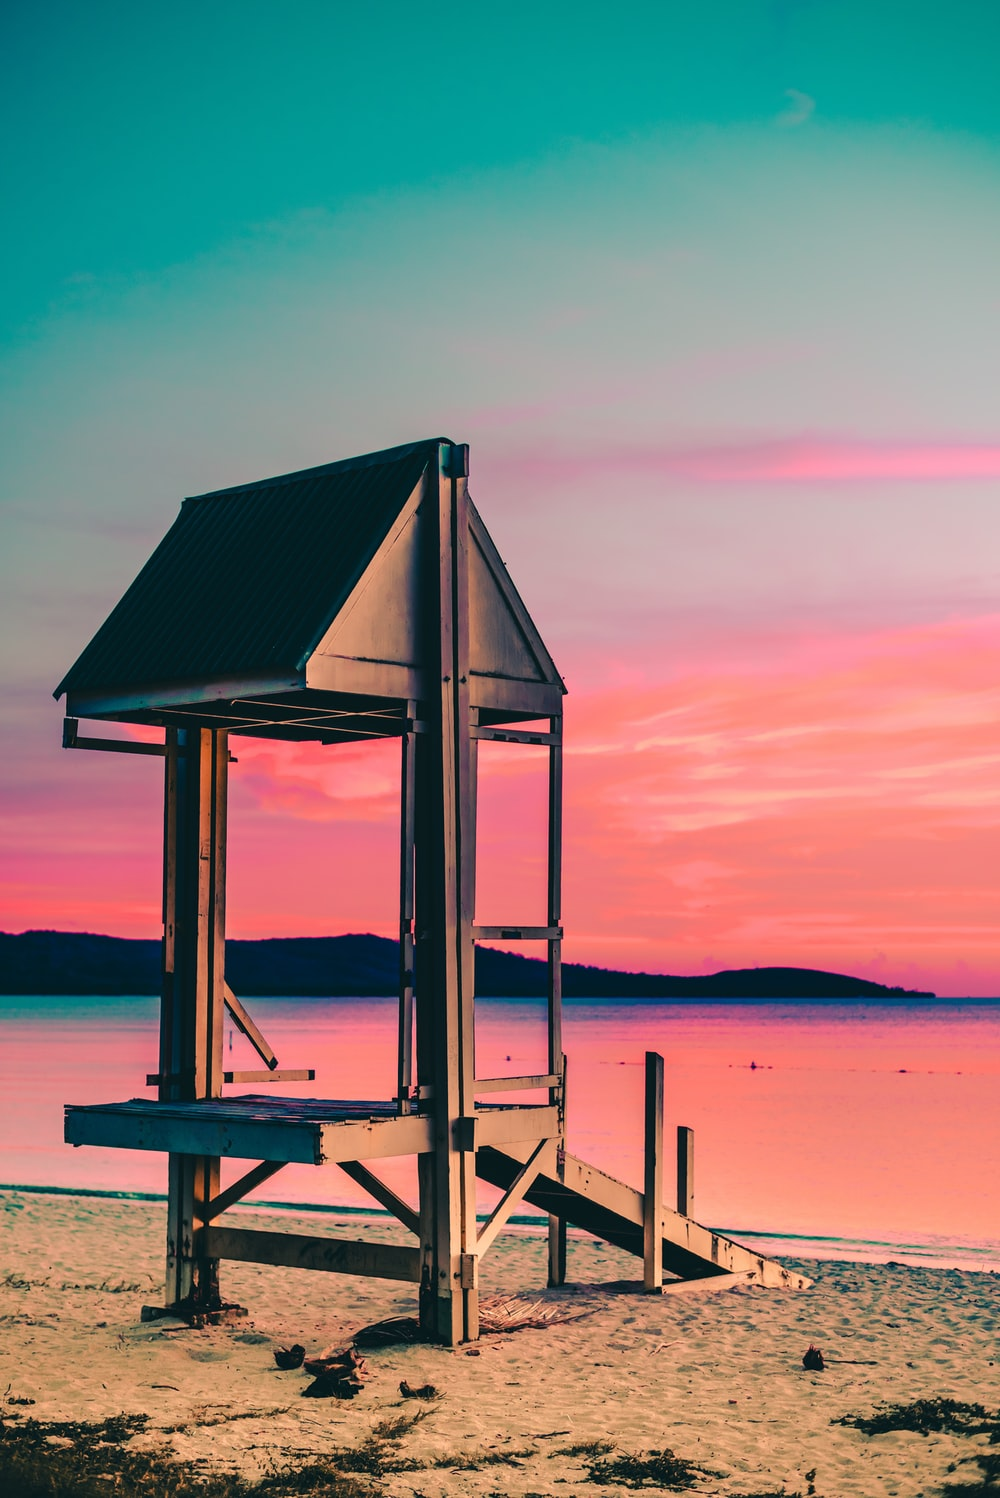 lifeguard house by the seashore during golden hour